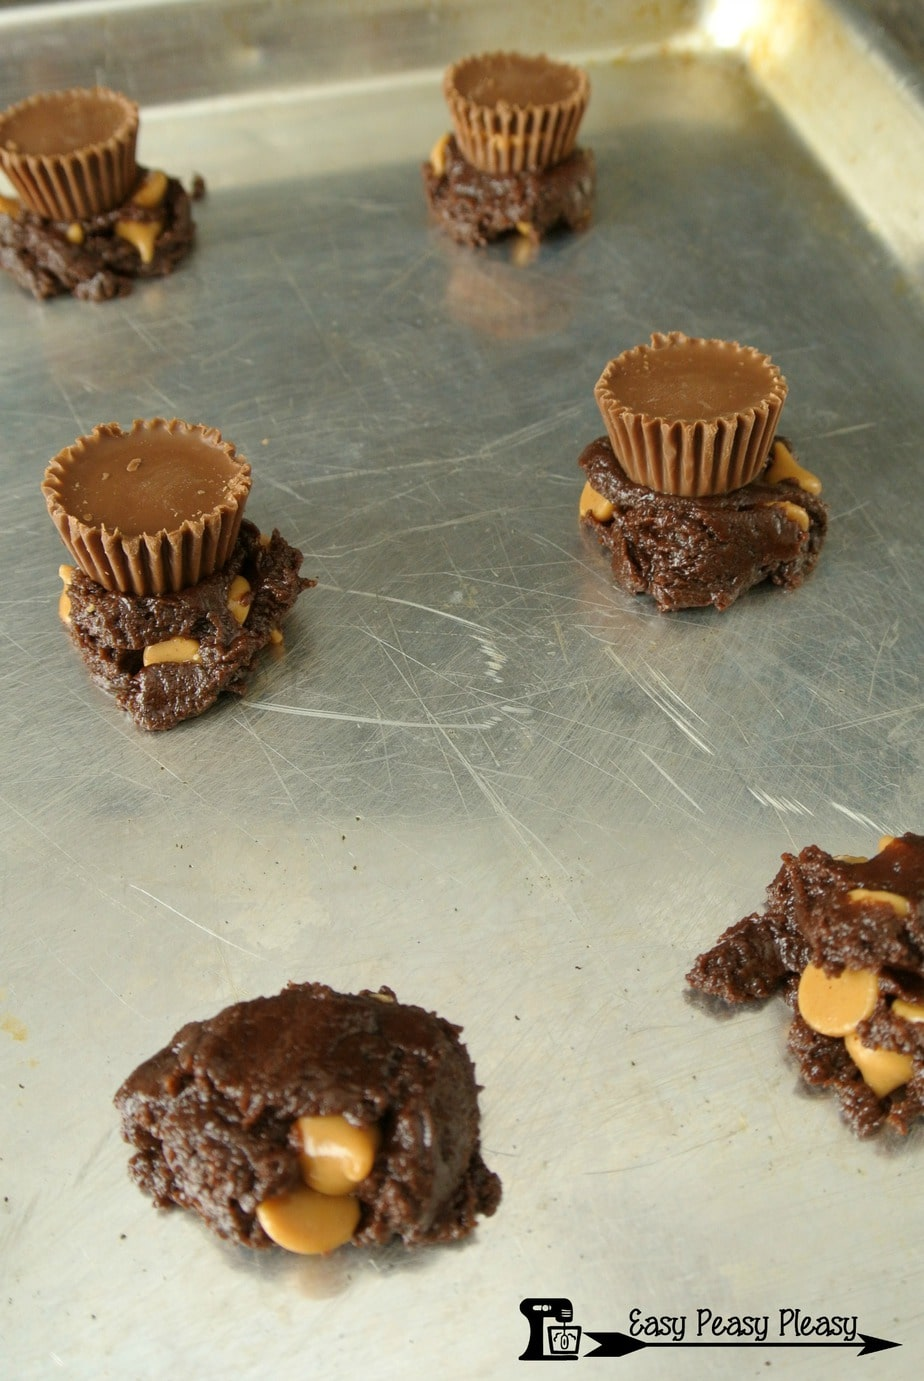 Making Chocolate Peanut Butter Cup Cookies.